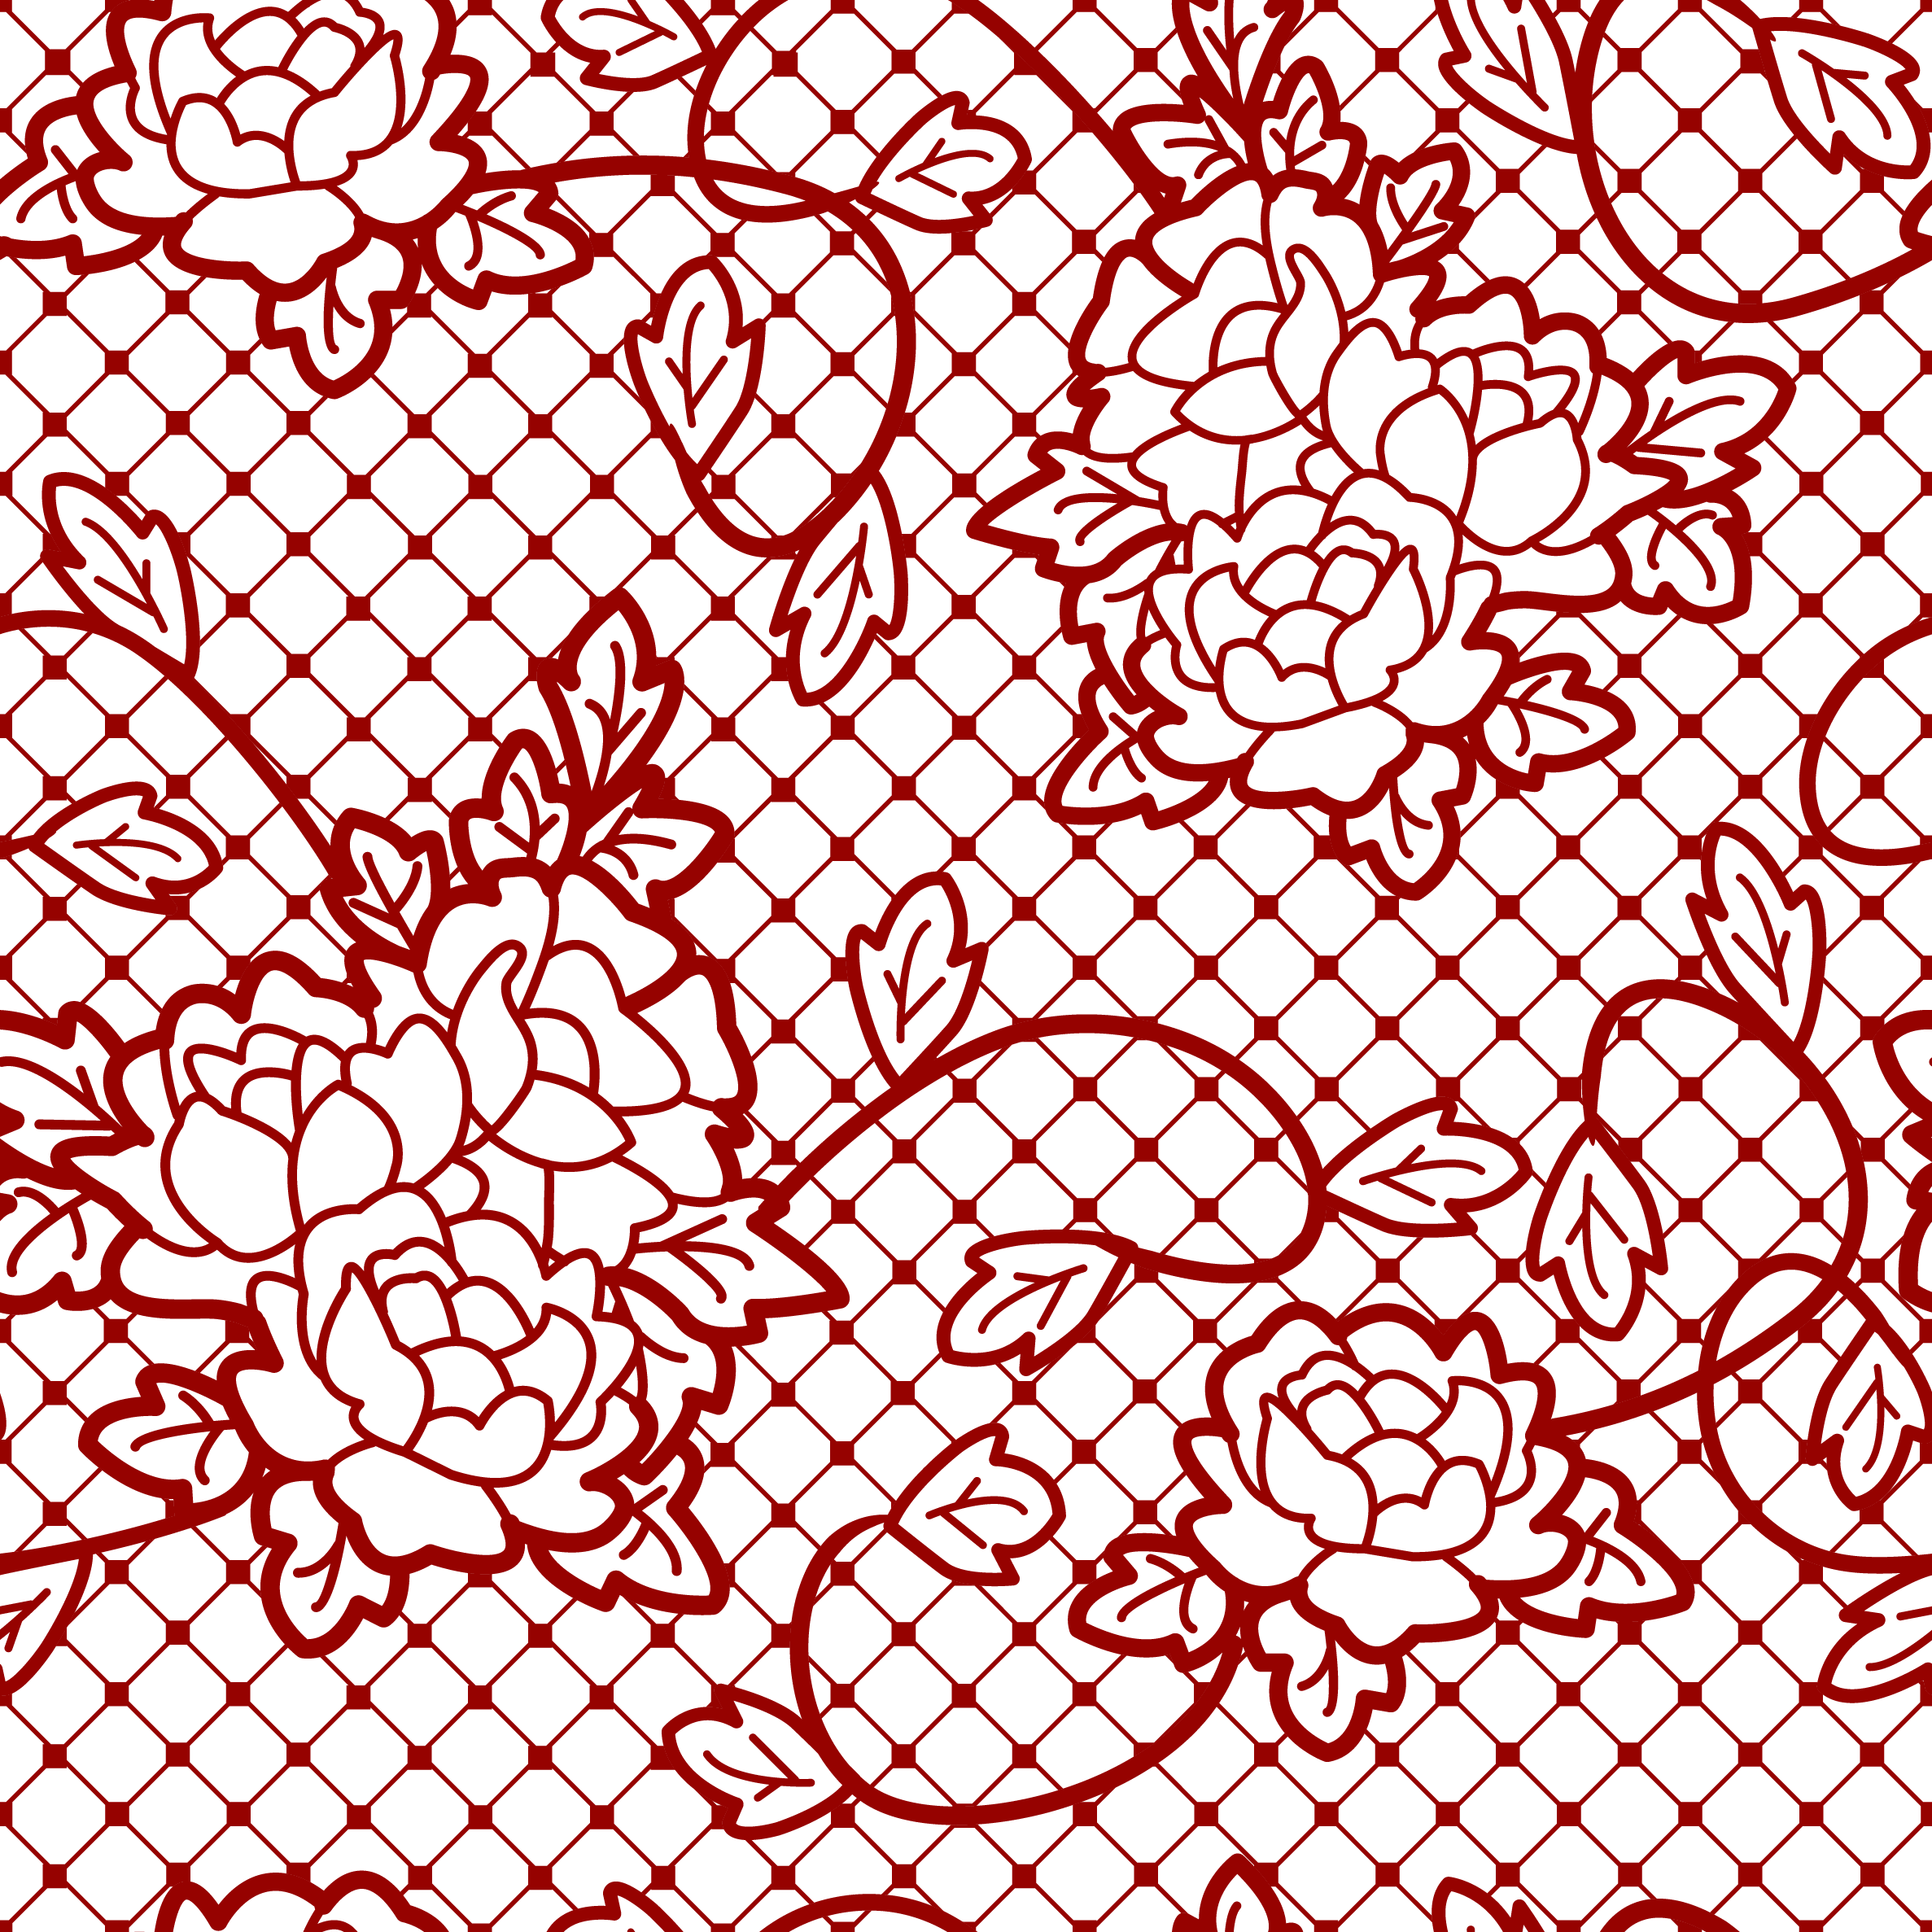 Red lace clipart 20 free Cliparts | Download images on ...